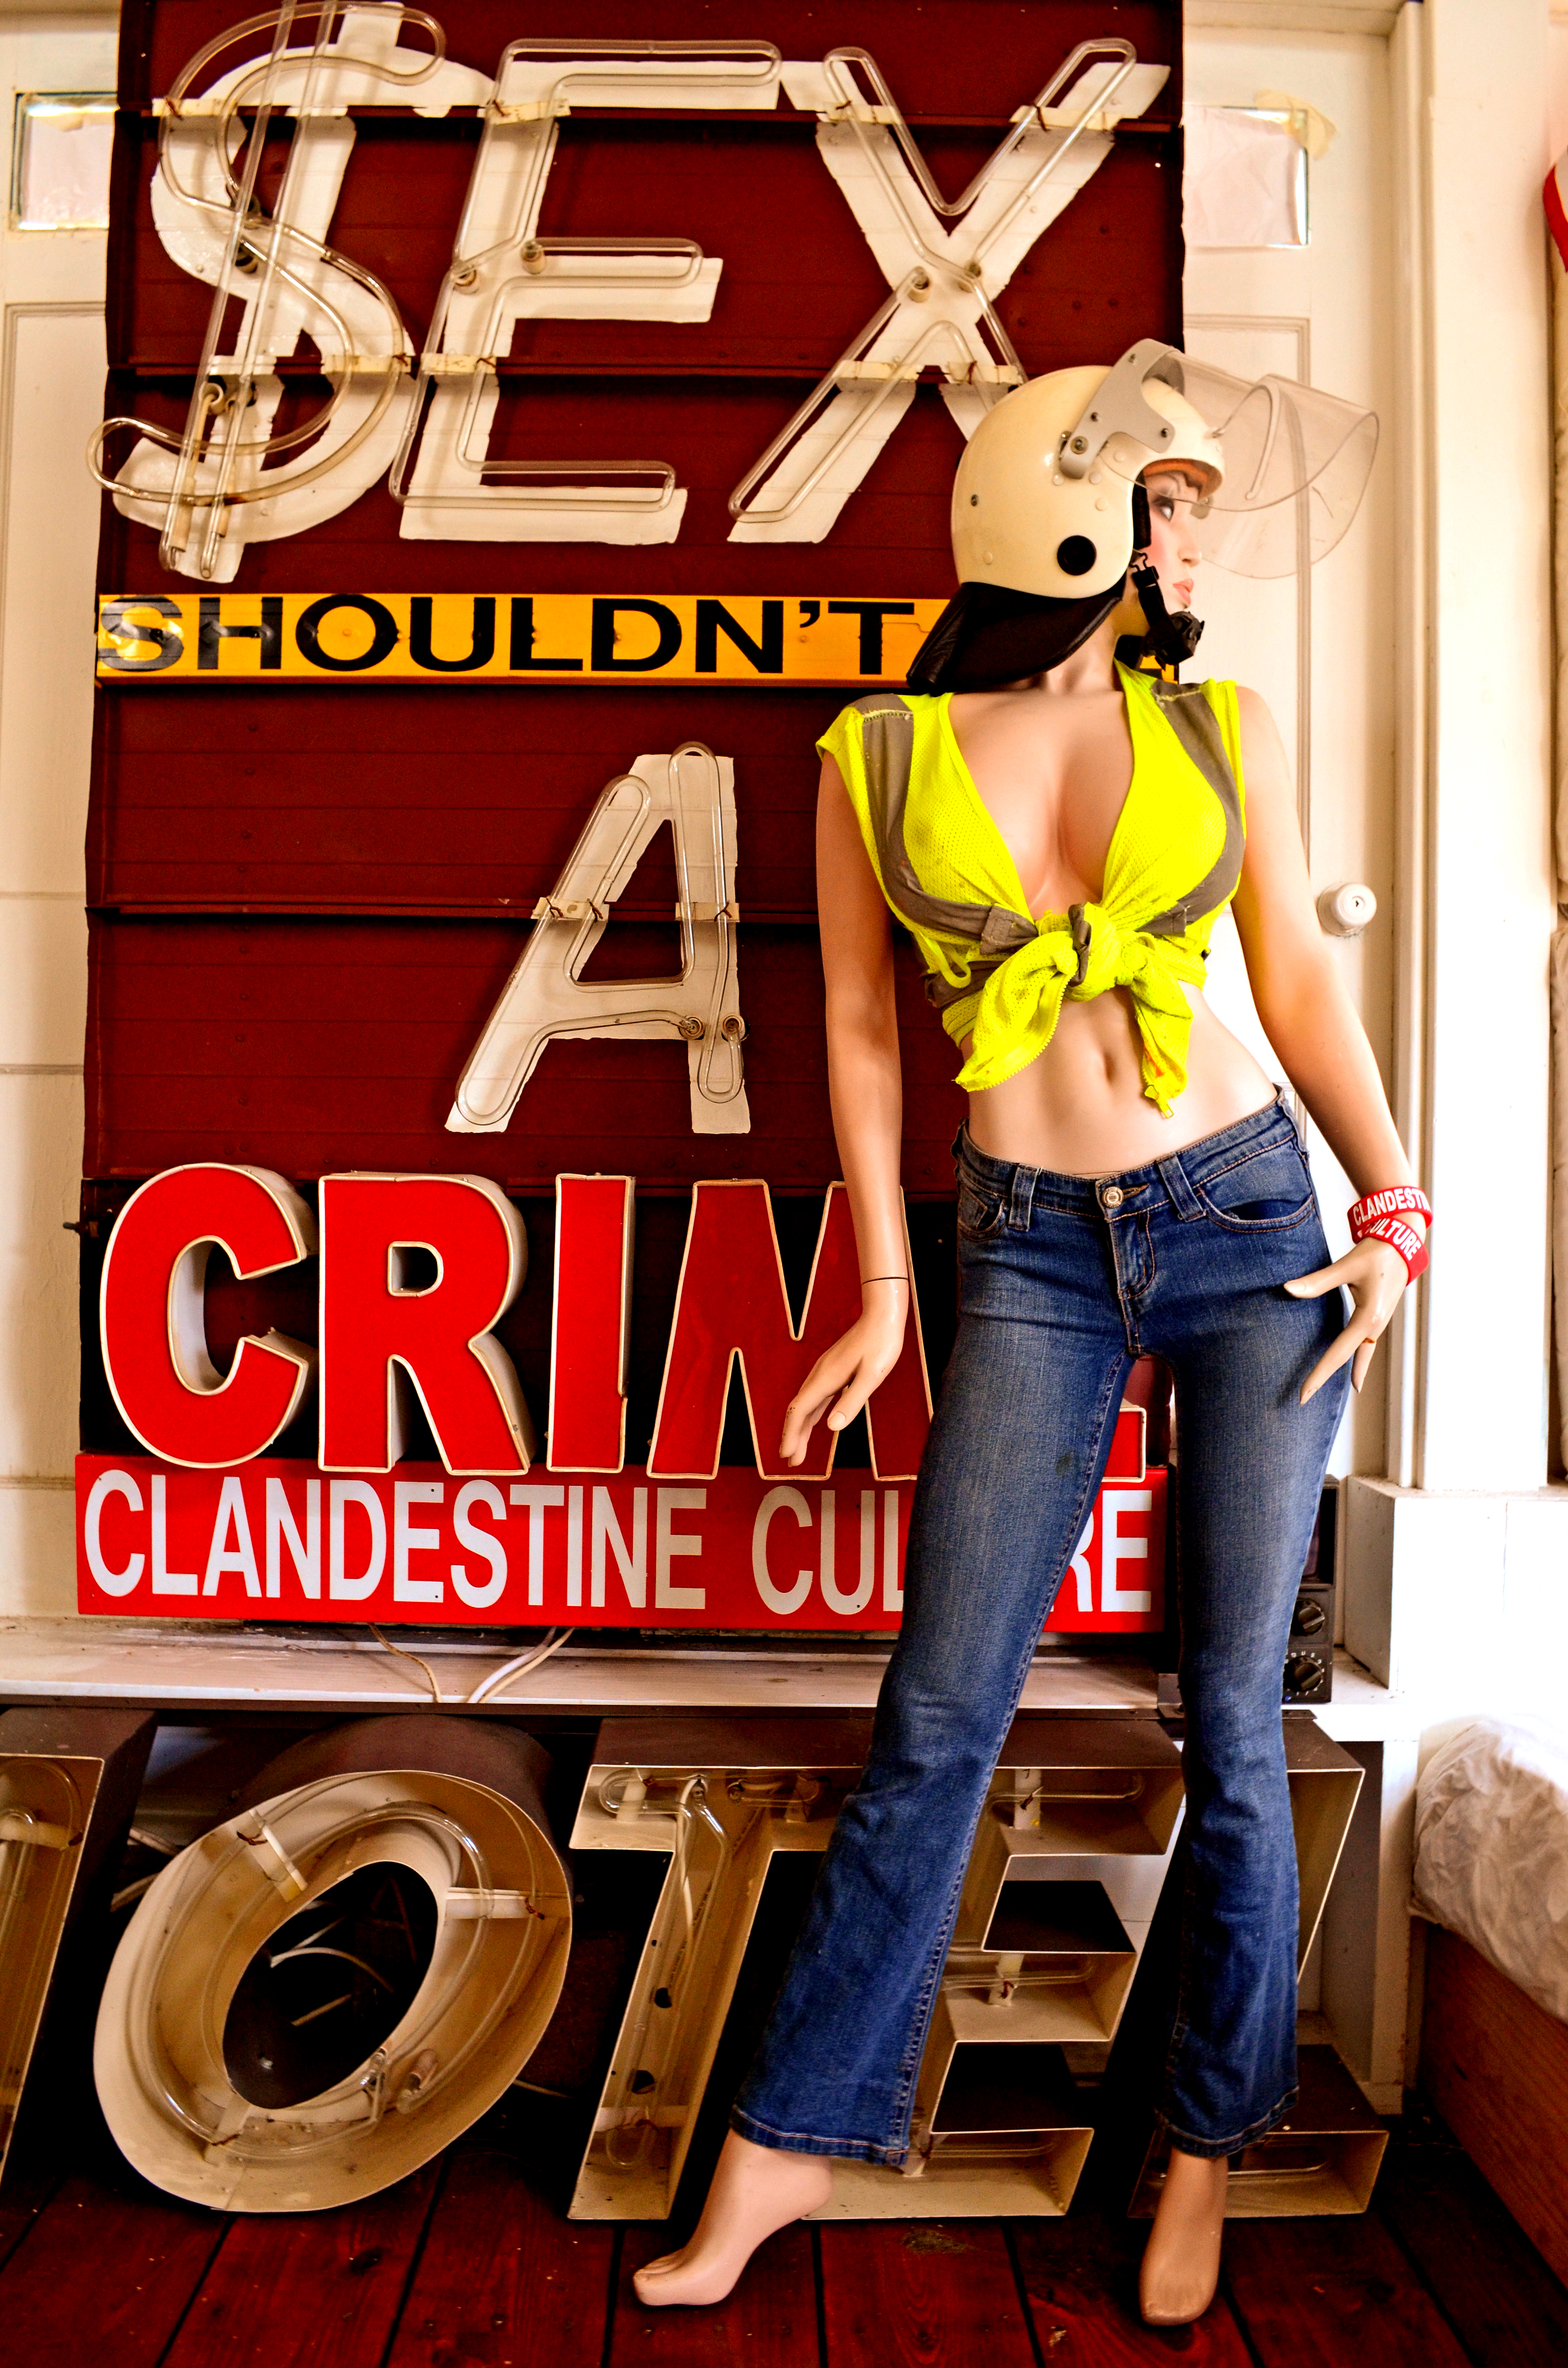 clandestine culture ,Samantha and Sex Shouldnt be a crime